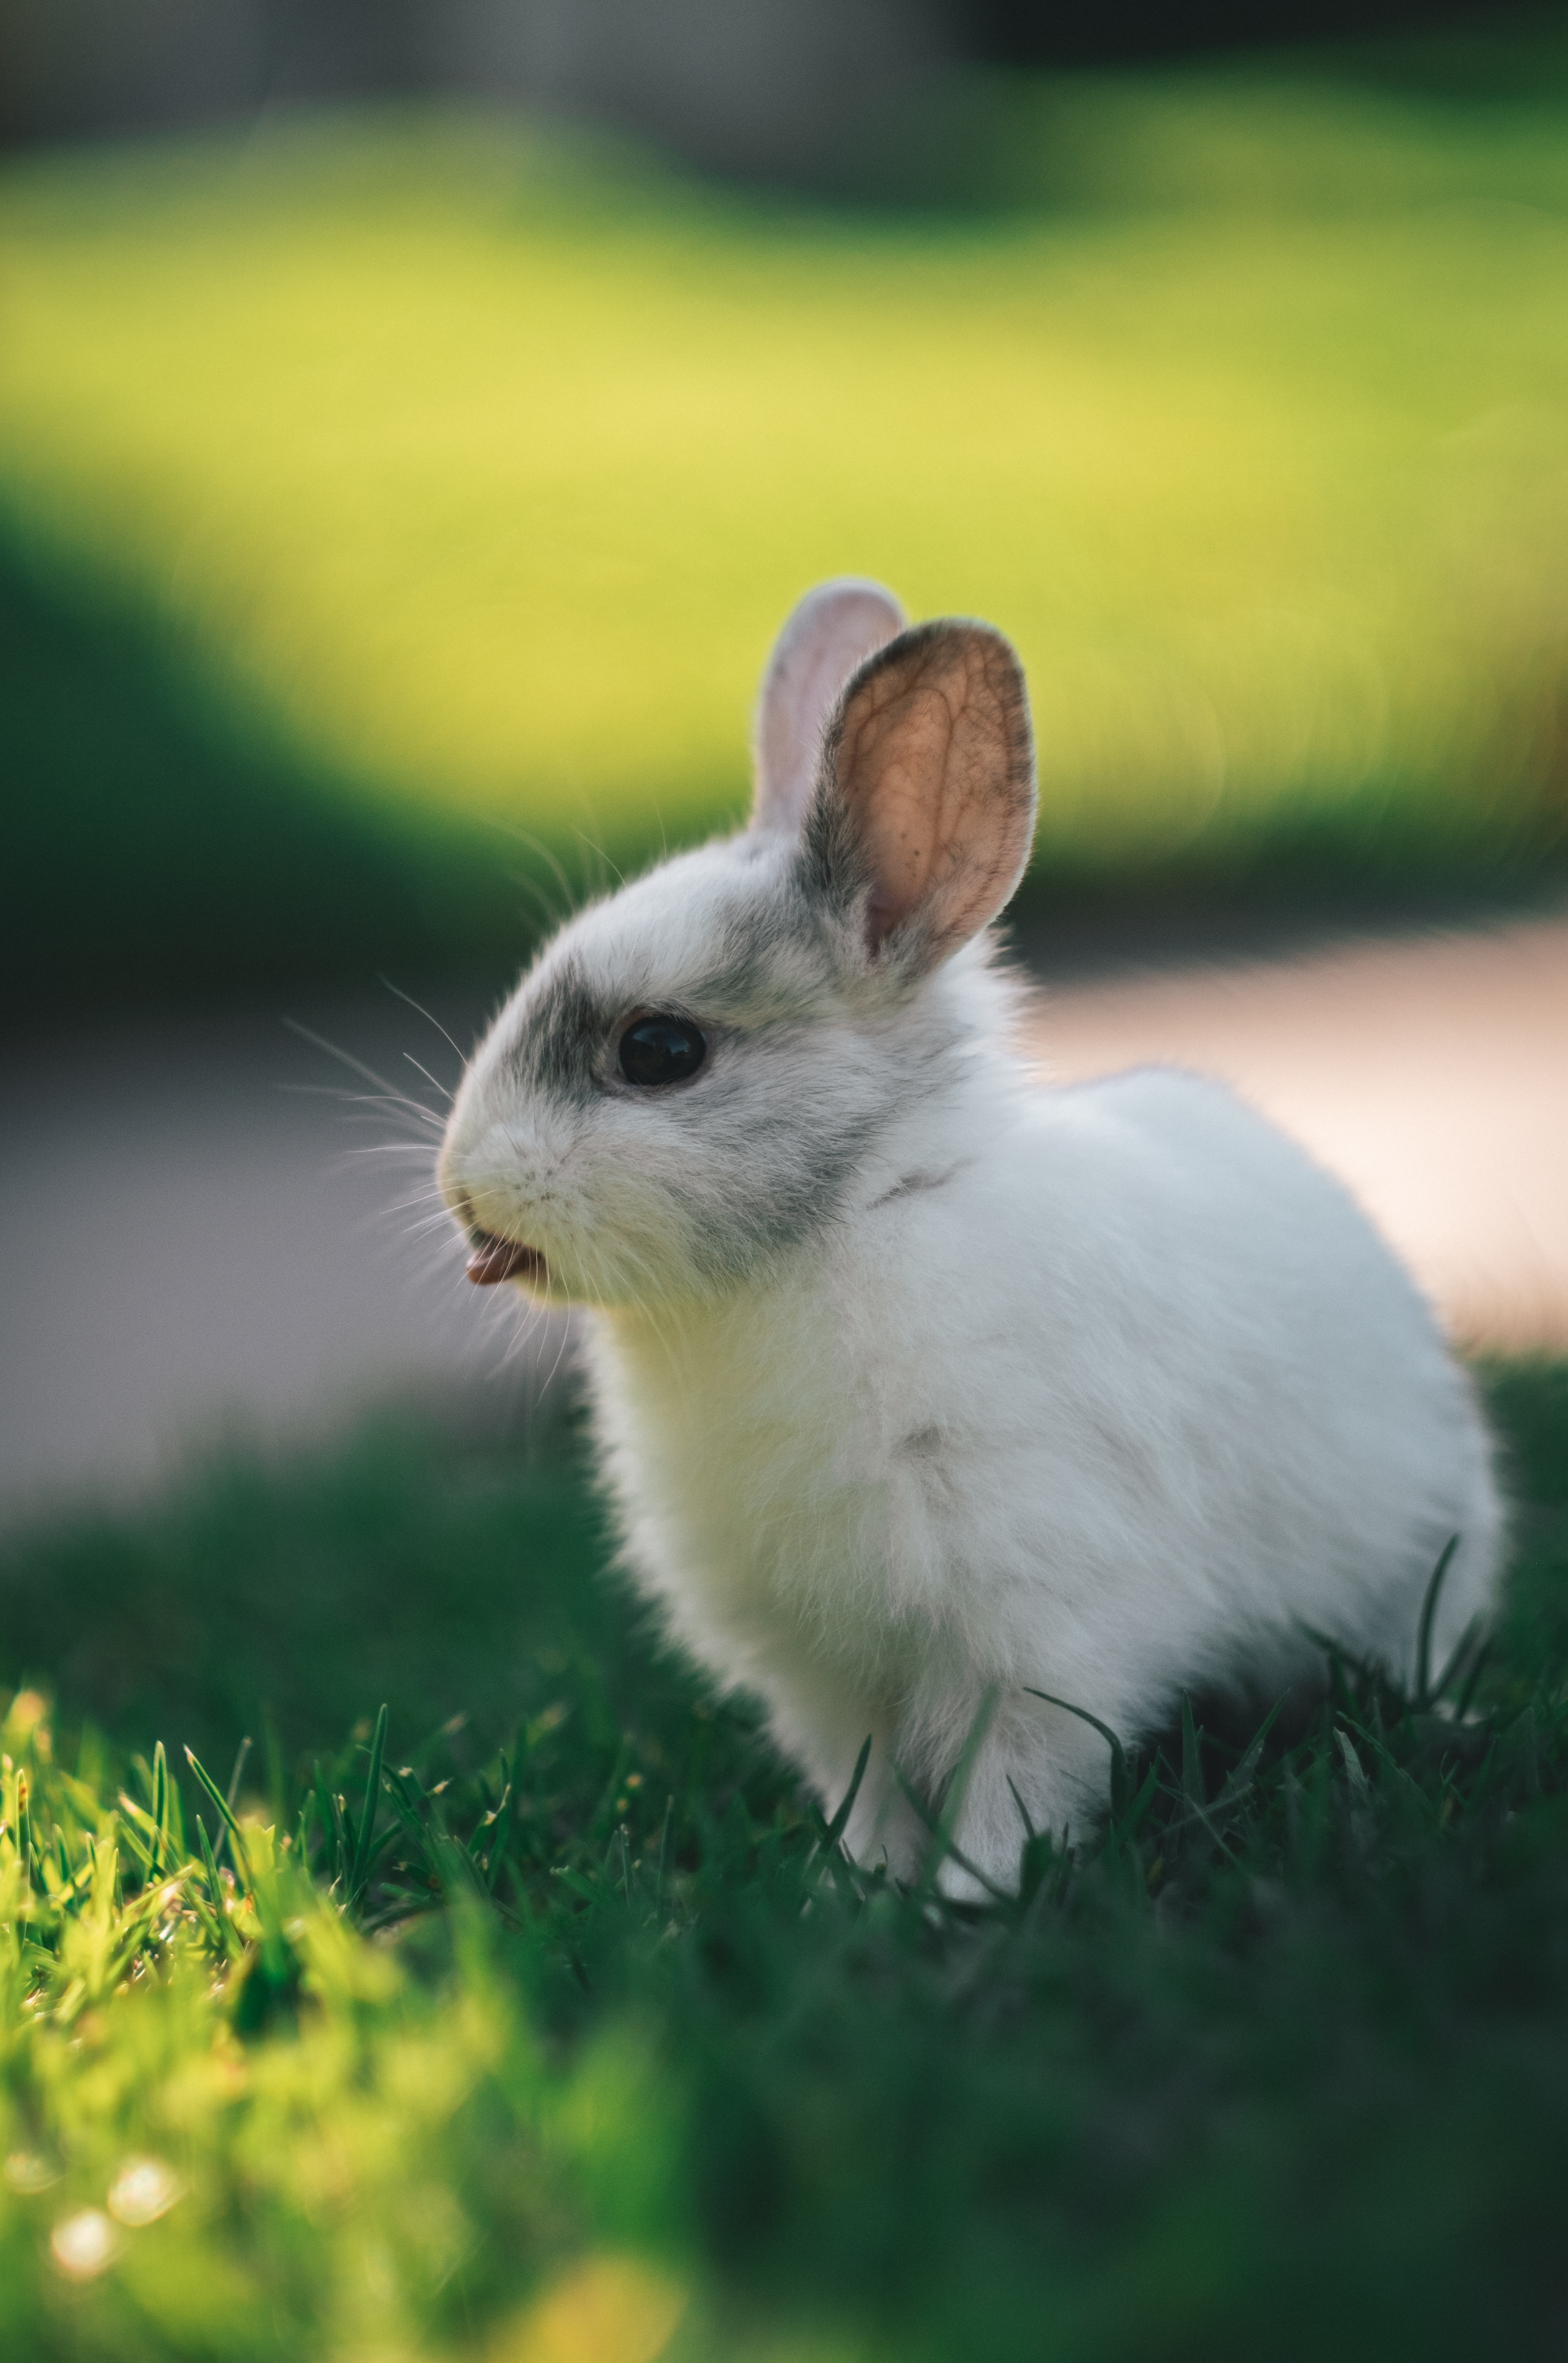 148364 download wallpaper Animals, Rabbit, Hare, Protruding Tongue, Tongue Stuck Out, Funny screensavers and pictures for free